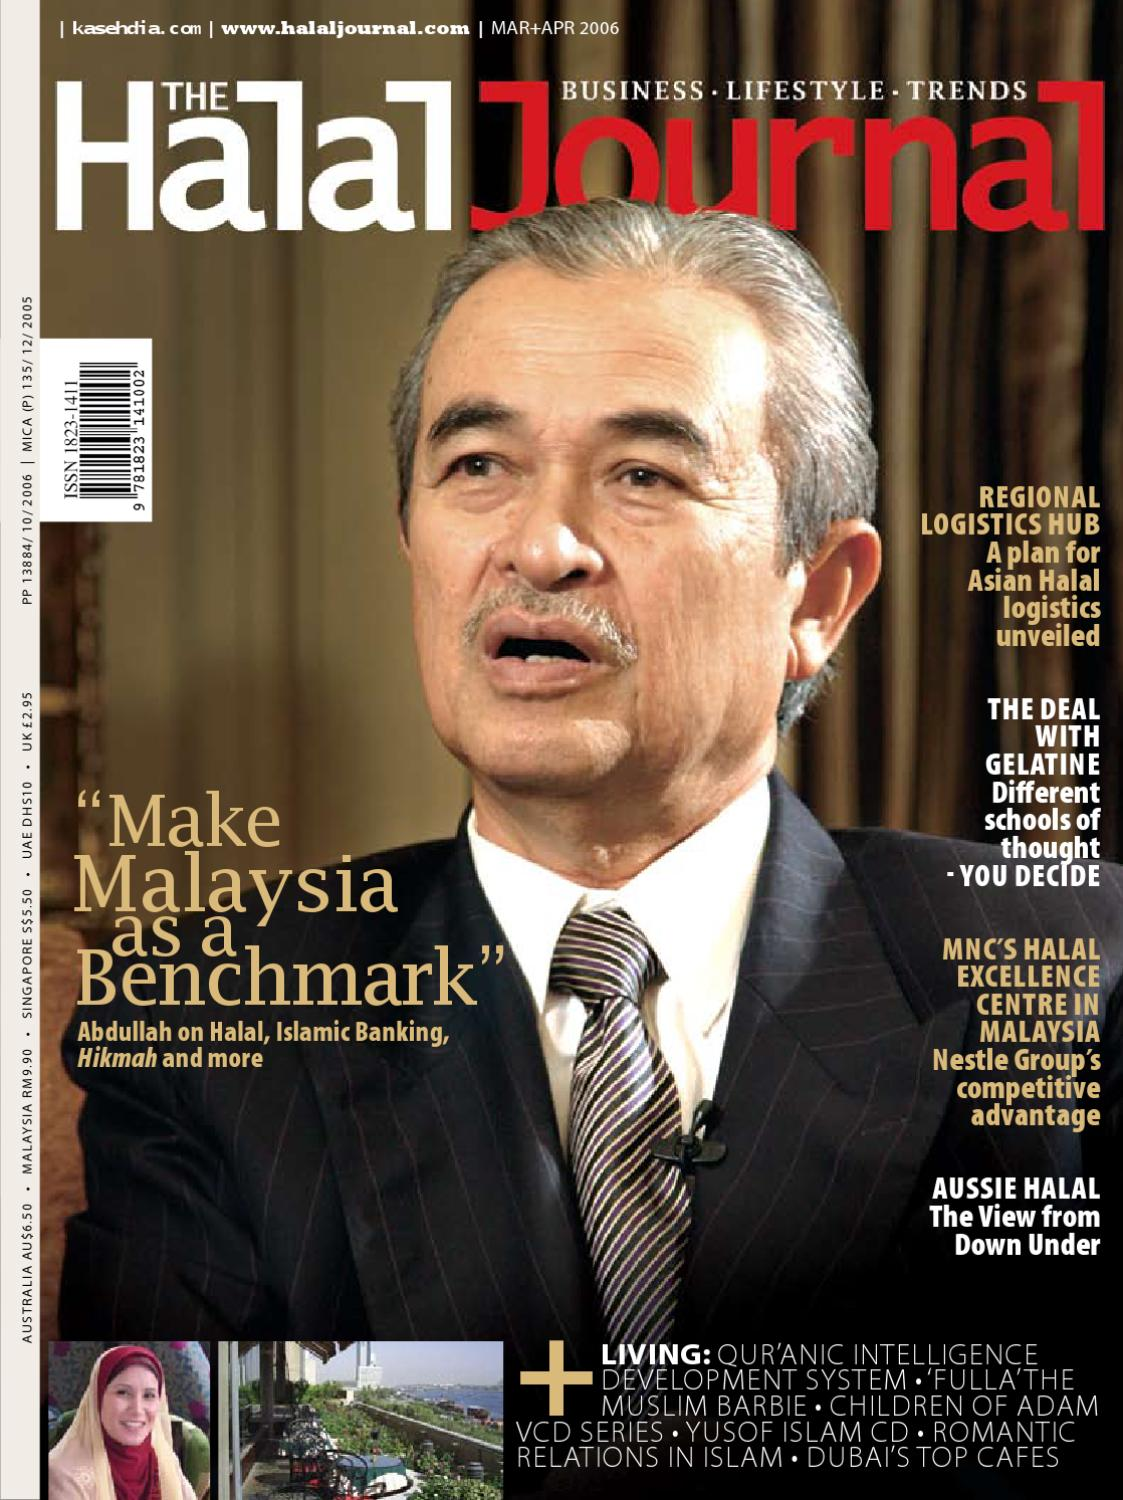 The Halal Journal Jan Feb 2011 By Issuu Tcash Puasa Mao Pie Face Showdown March April 2006